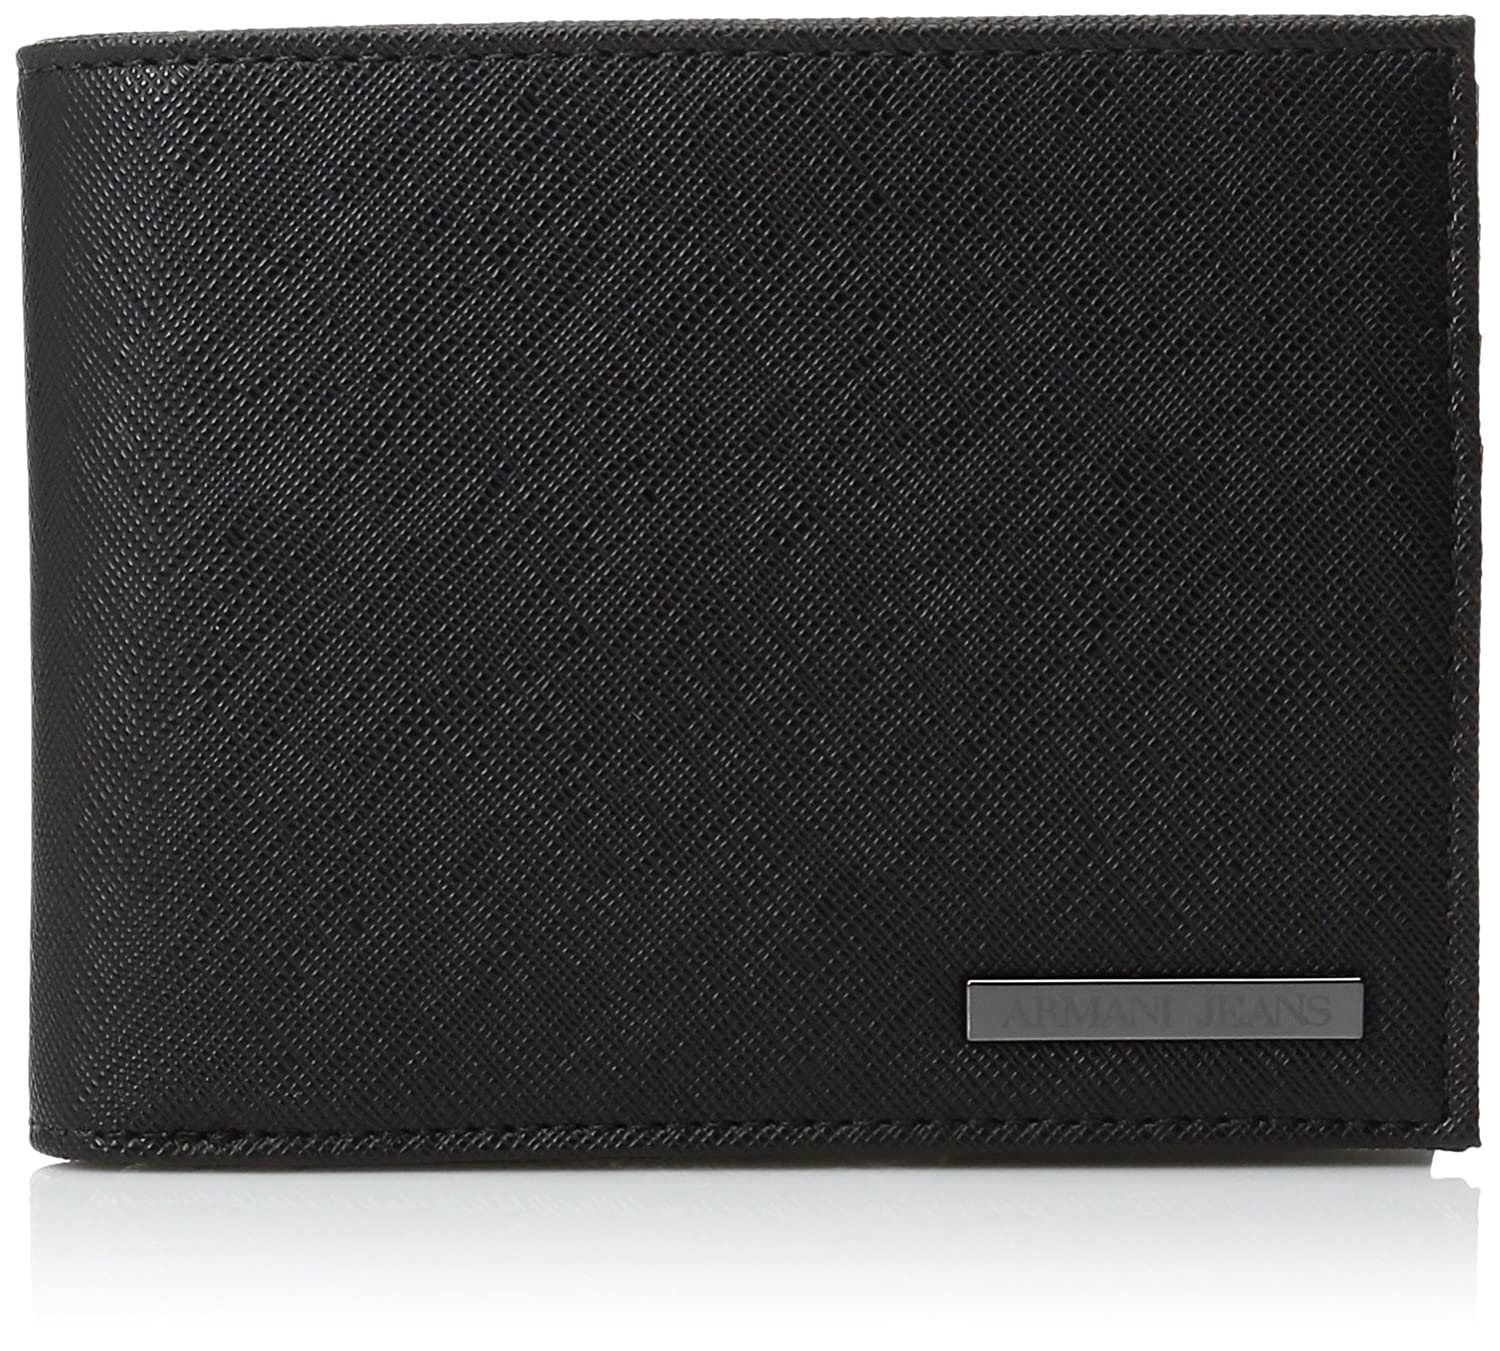 Armani Jeans Men's Safiano Embossed Pu Bifold Wallet With Coin Pocket black One Size 938538CC9910020